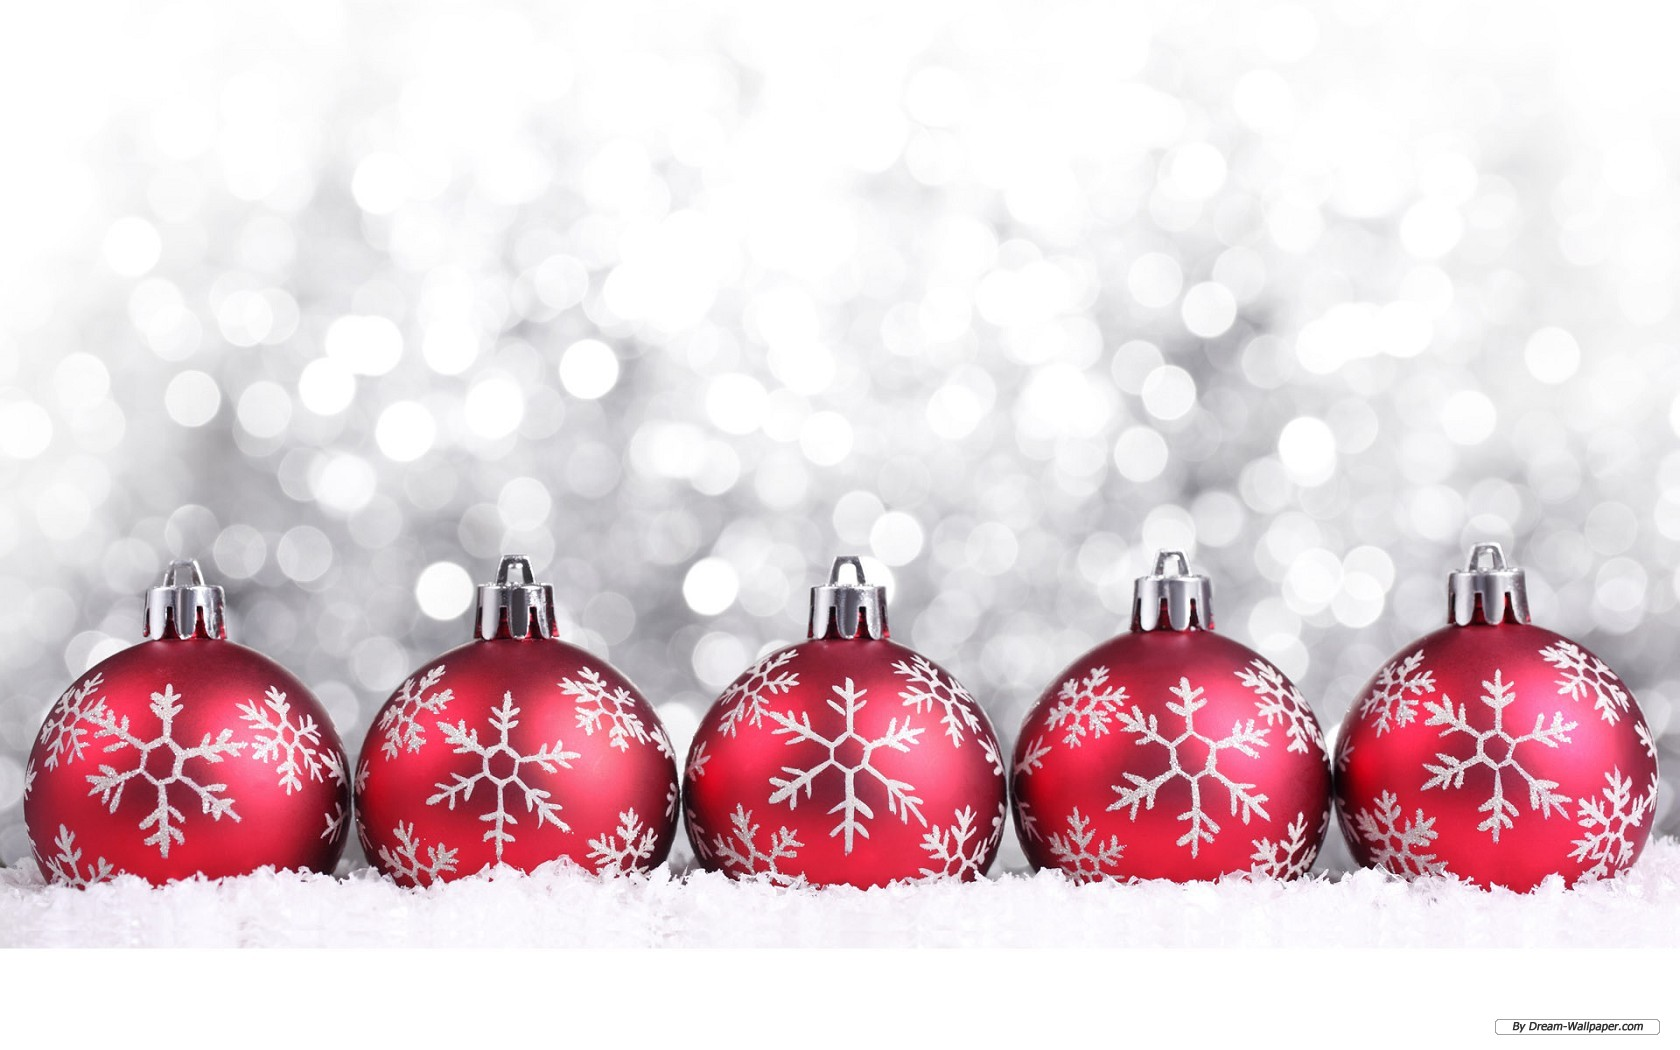 Christmas Ornaments Background wallpaper 1680x1050 26291 1680x1050